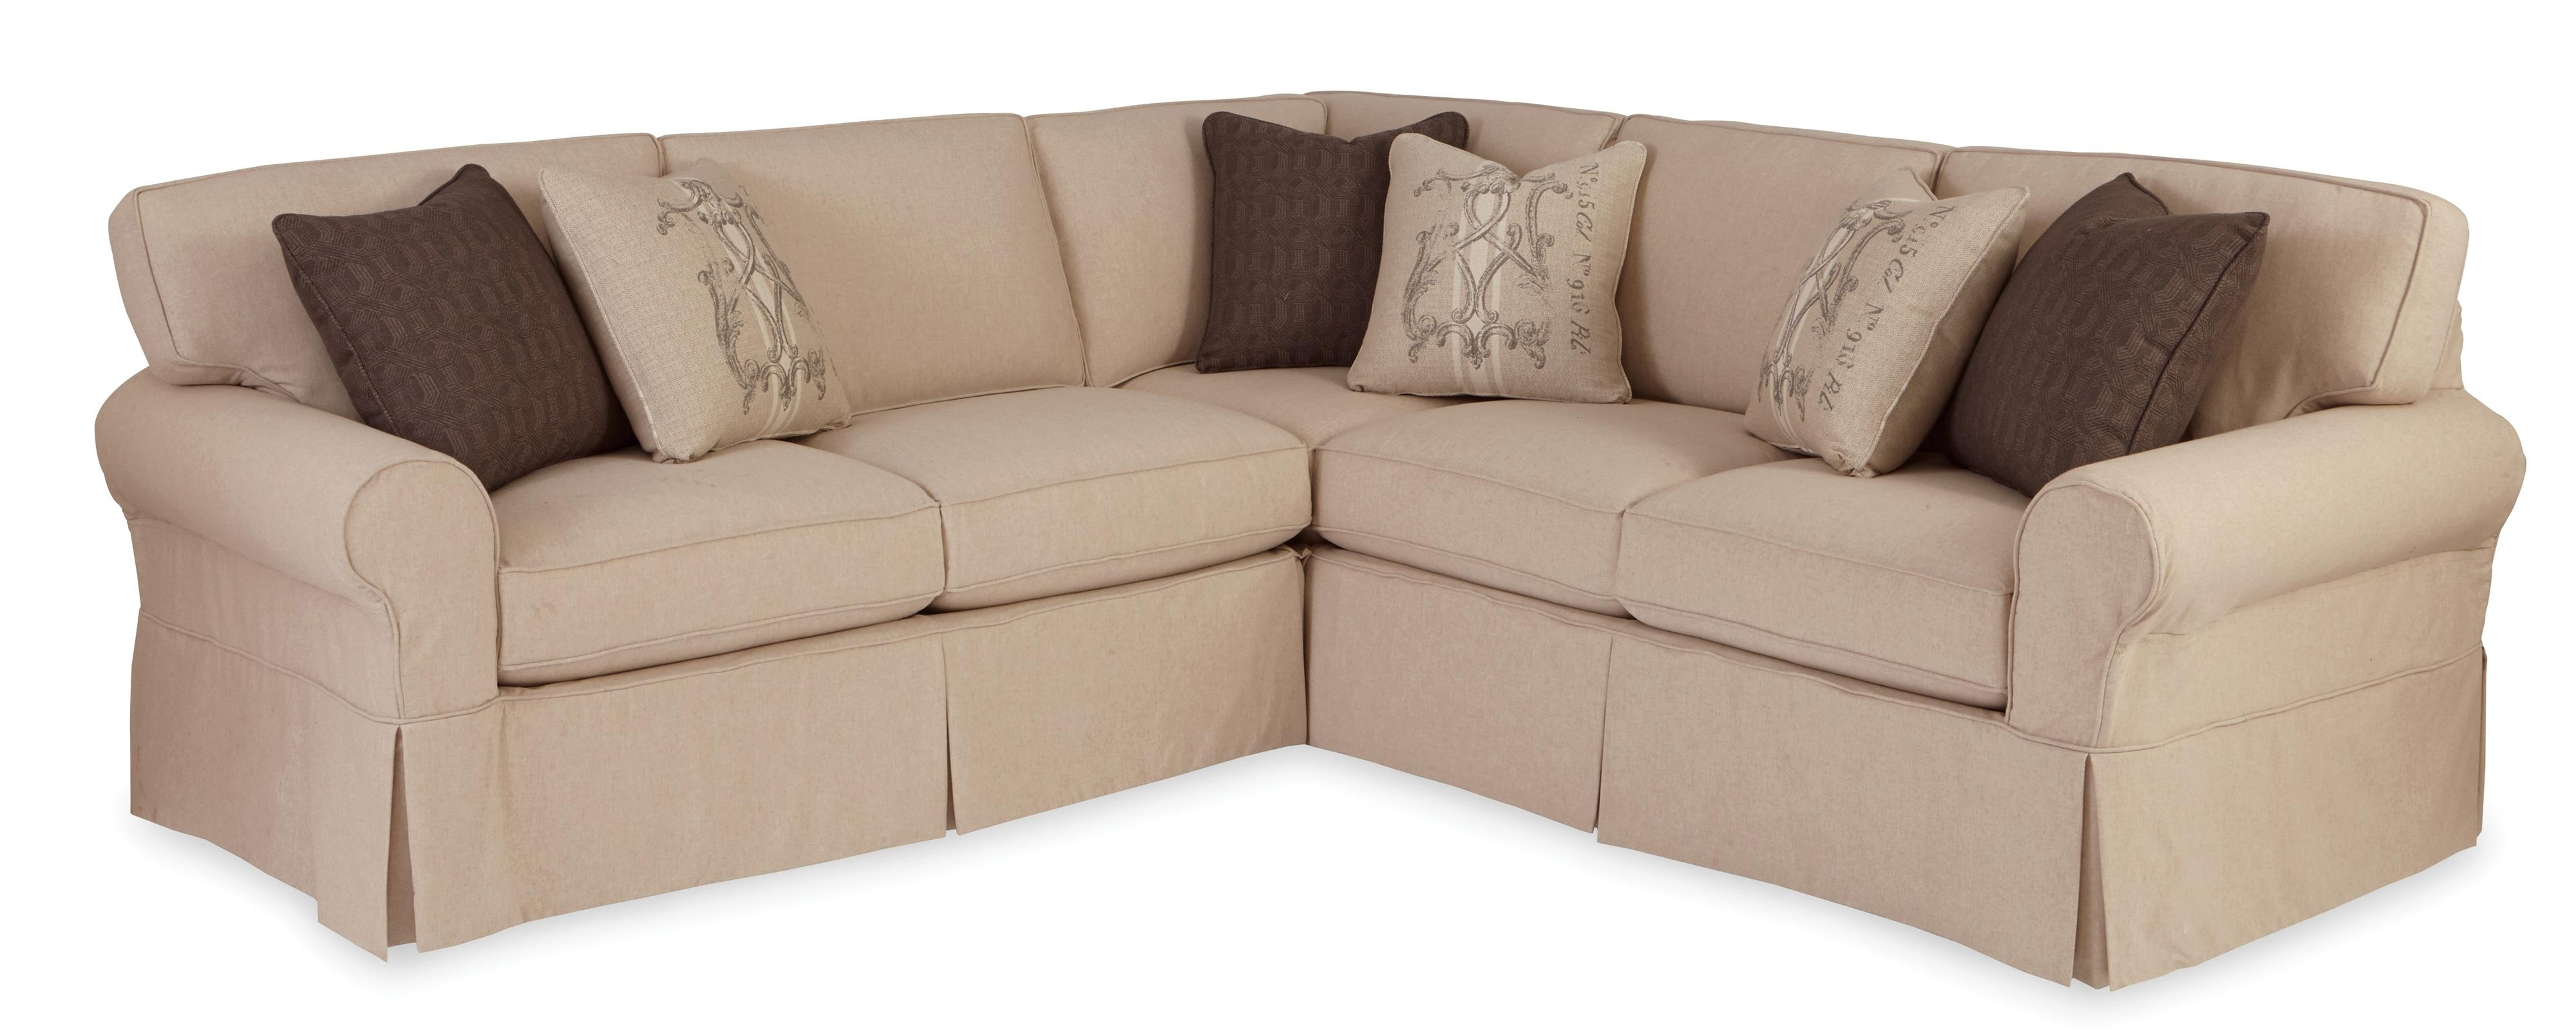 Craftmaster 9228 Two Piece Slipcovered Sectional Sofa With Raf Inside Josephine 2 Piece Sectionals With Laf Sofa (View 17 of 30)